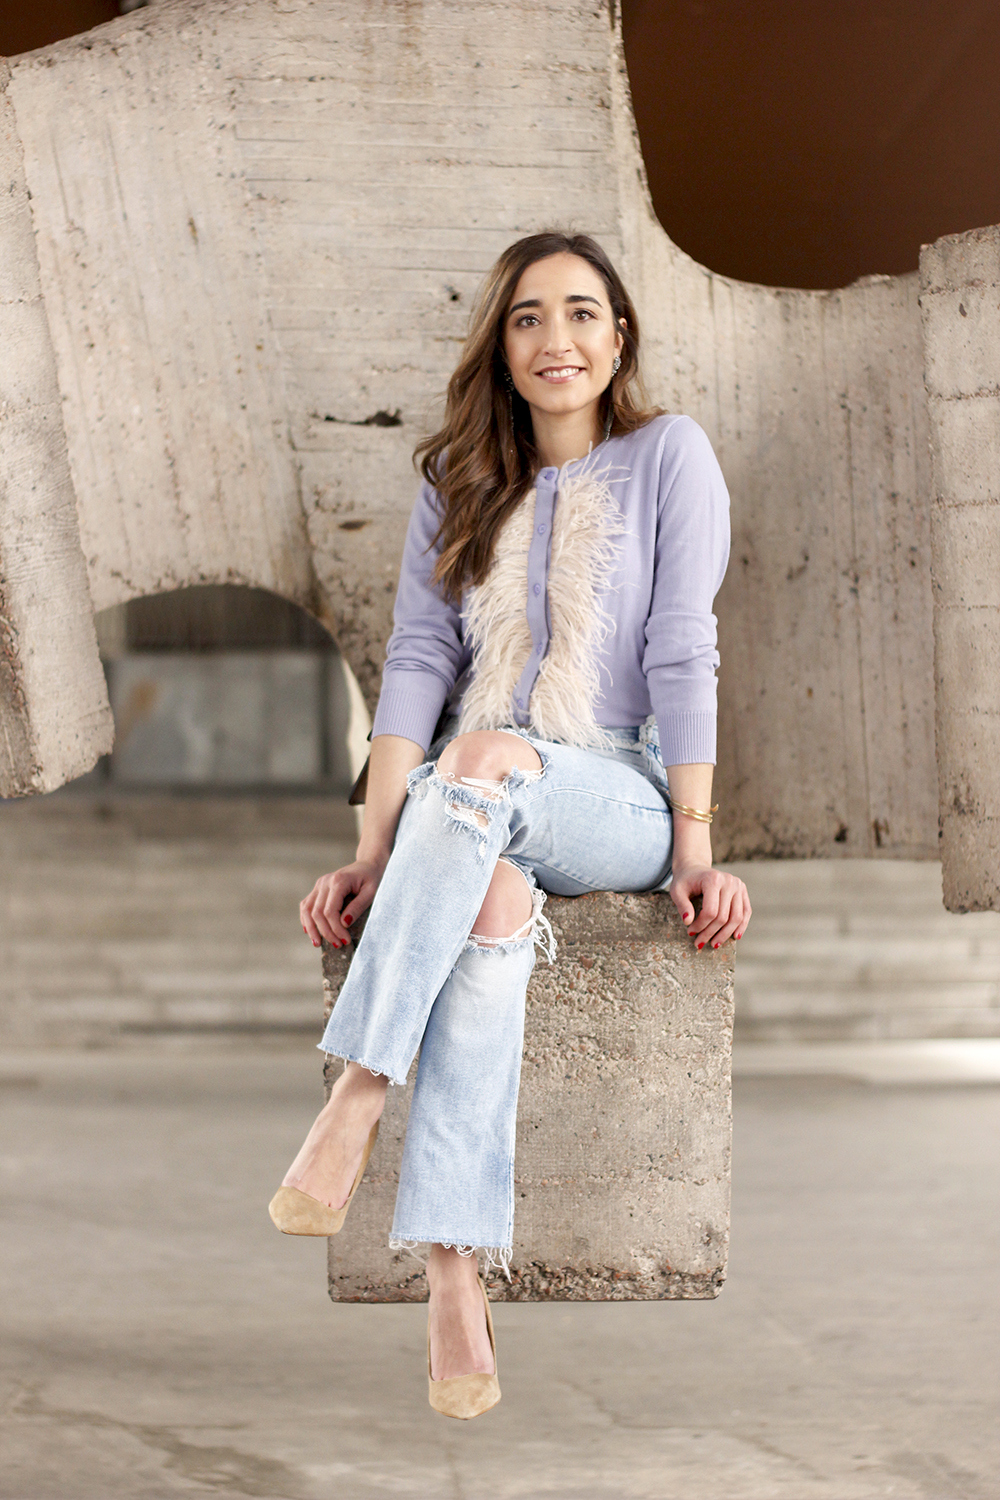 lavender sweater ripped jeans gucci bag nude heels casual street style casual outfit 201910